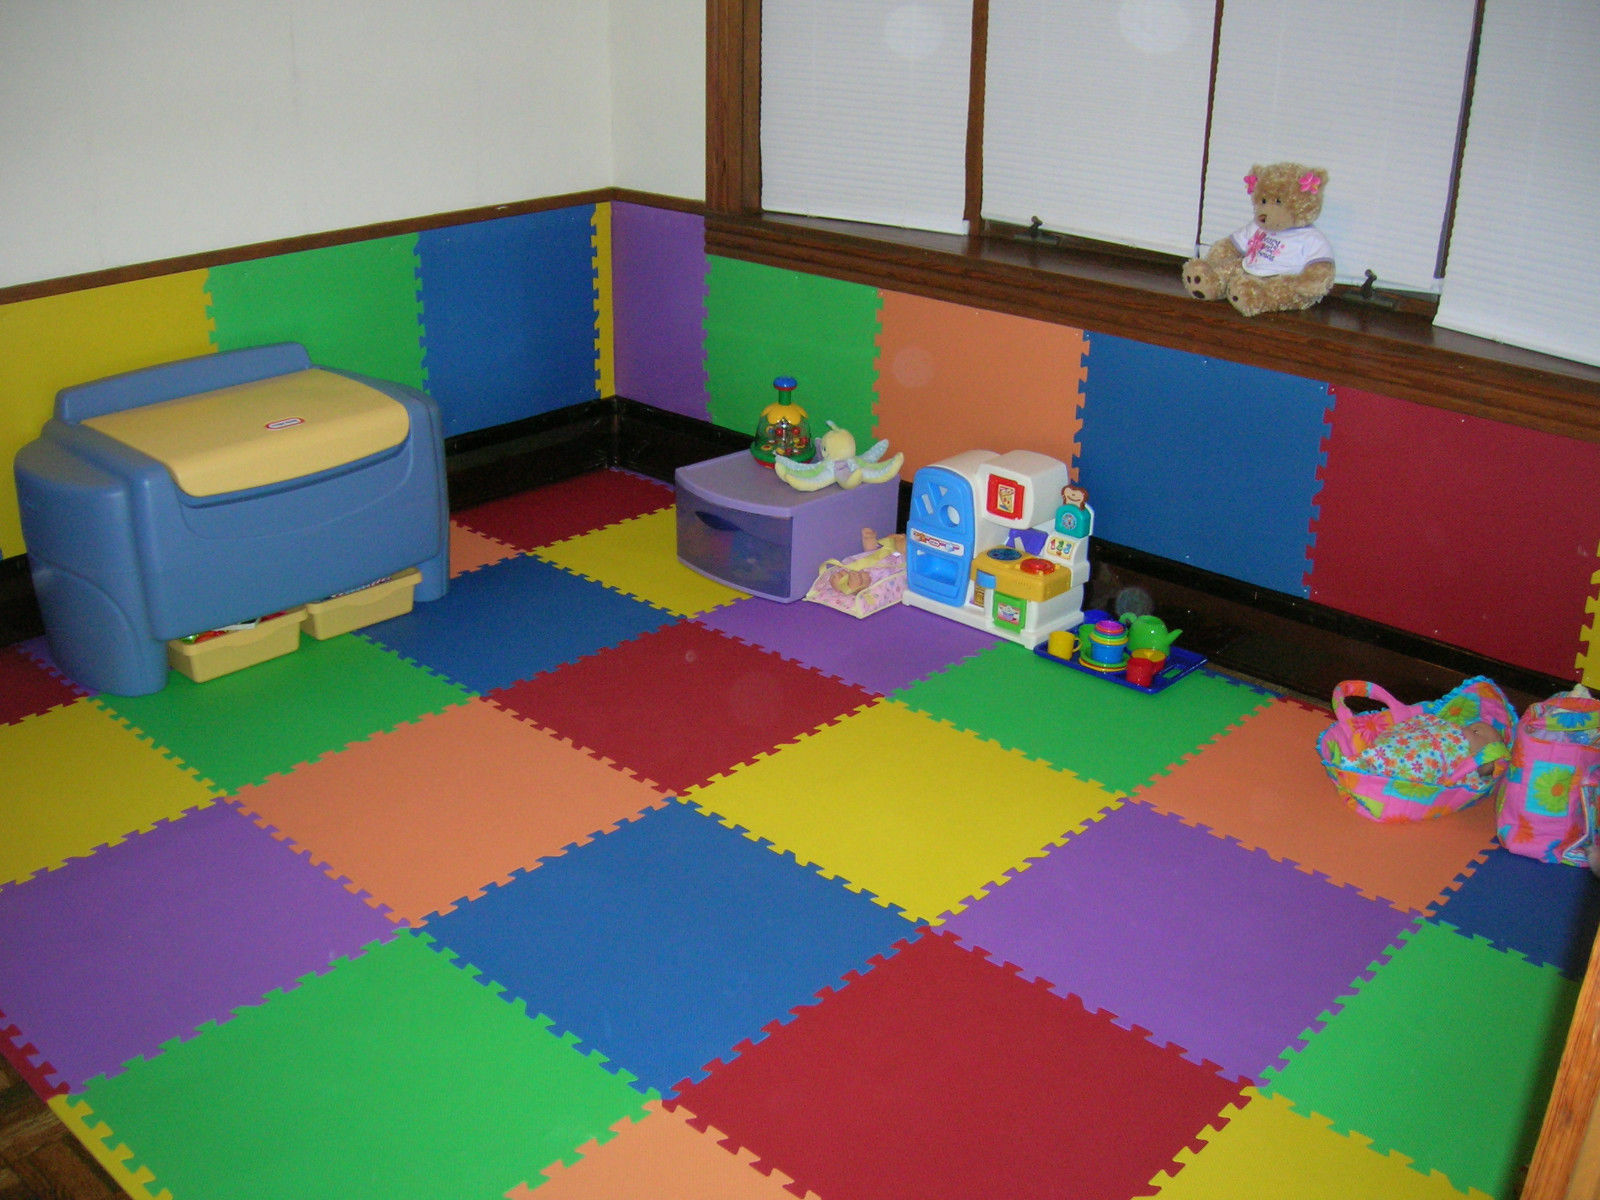 168 sq ft child gym daycare kids playroom foam mat interlocking flooring 24 c